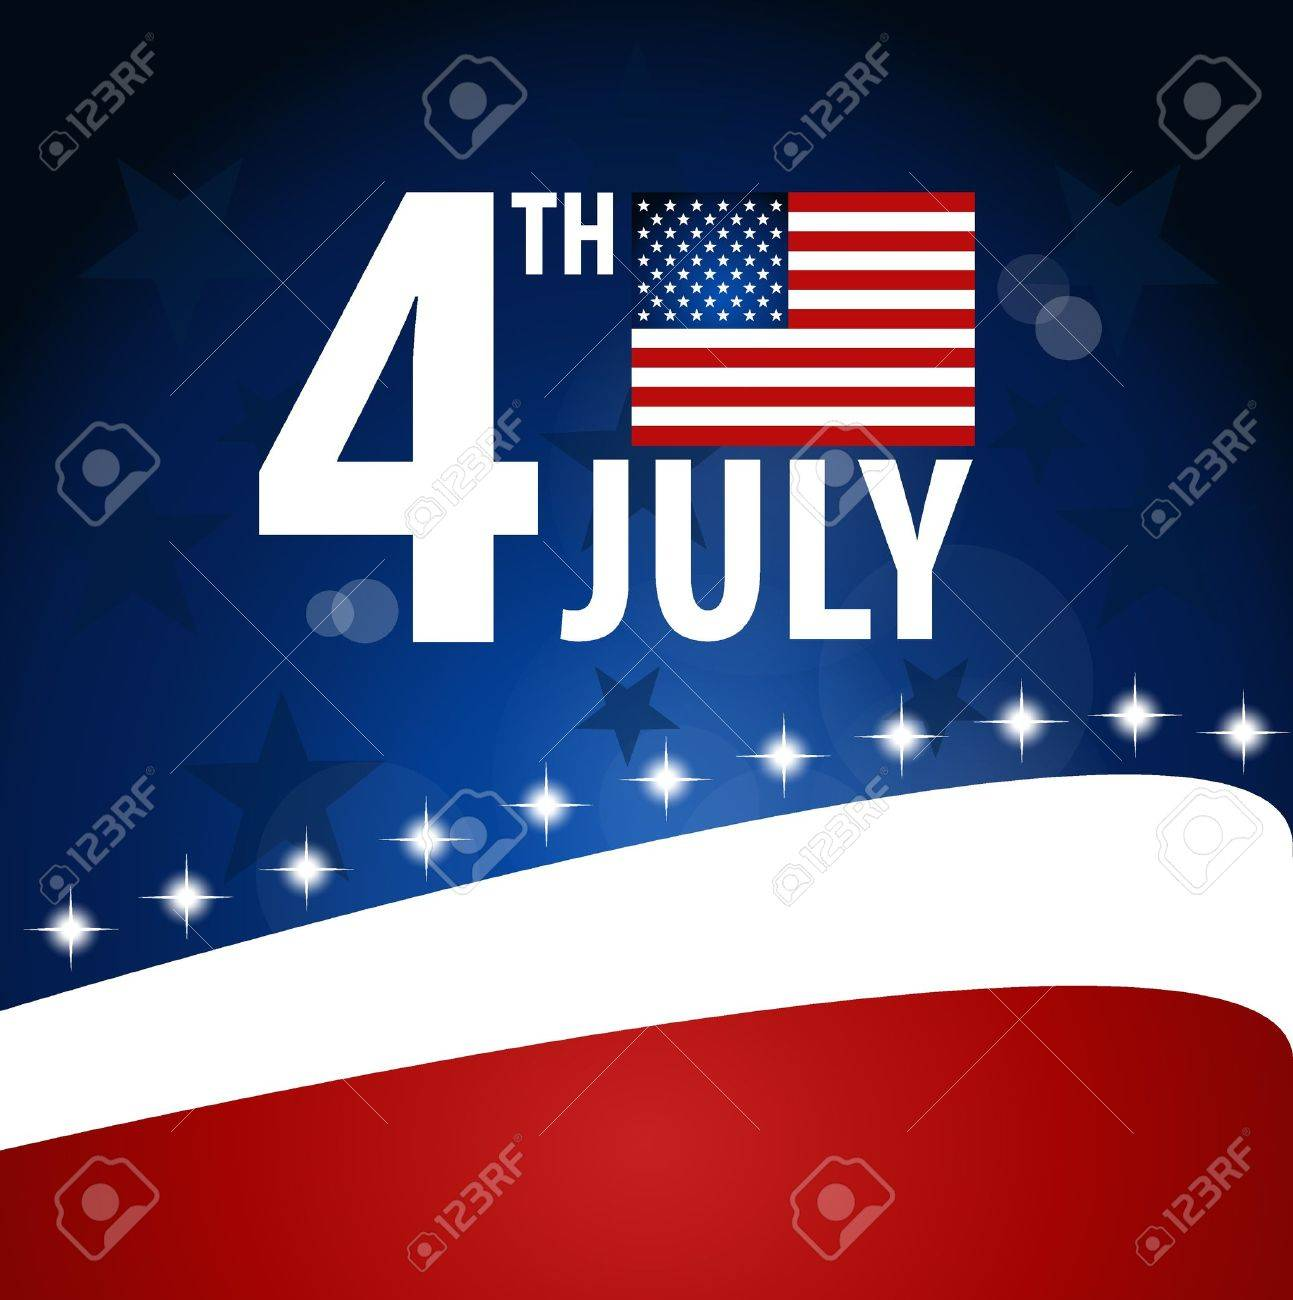 American Flag for Independence Day Stock Vector - 14178981